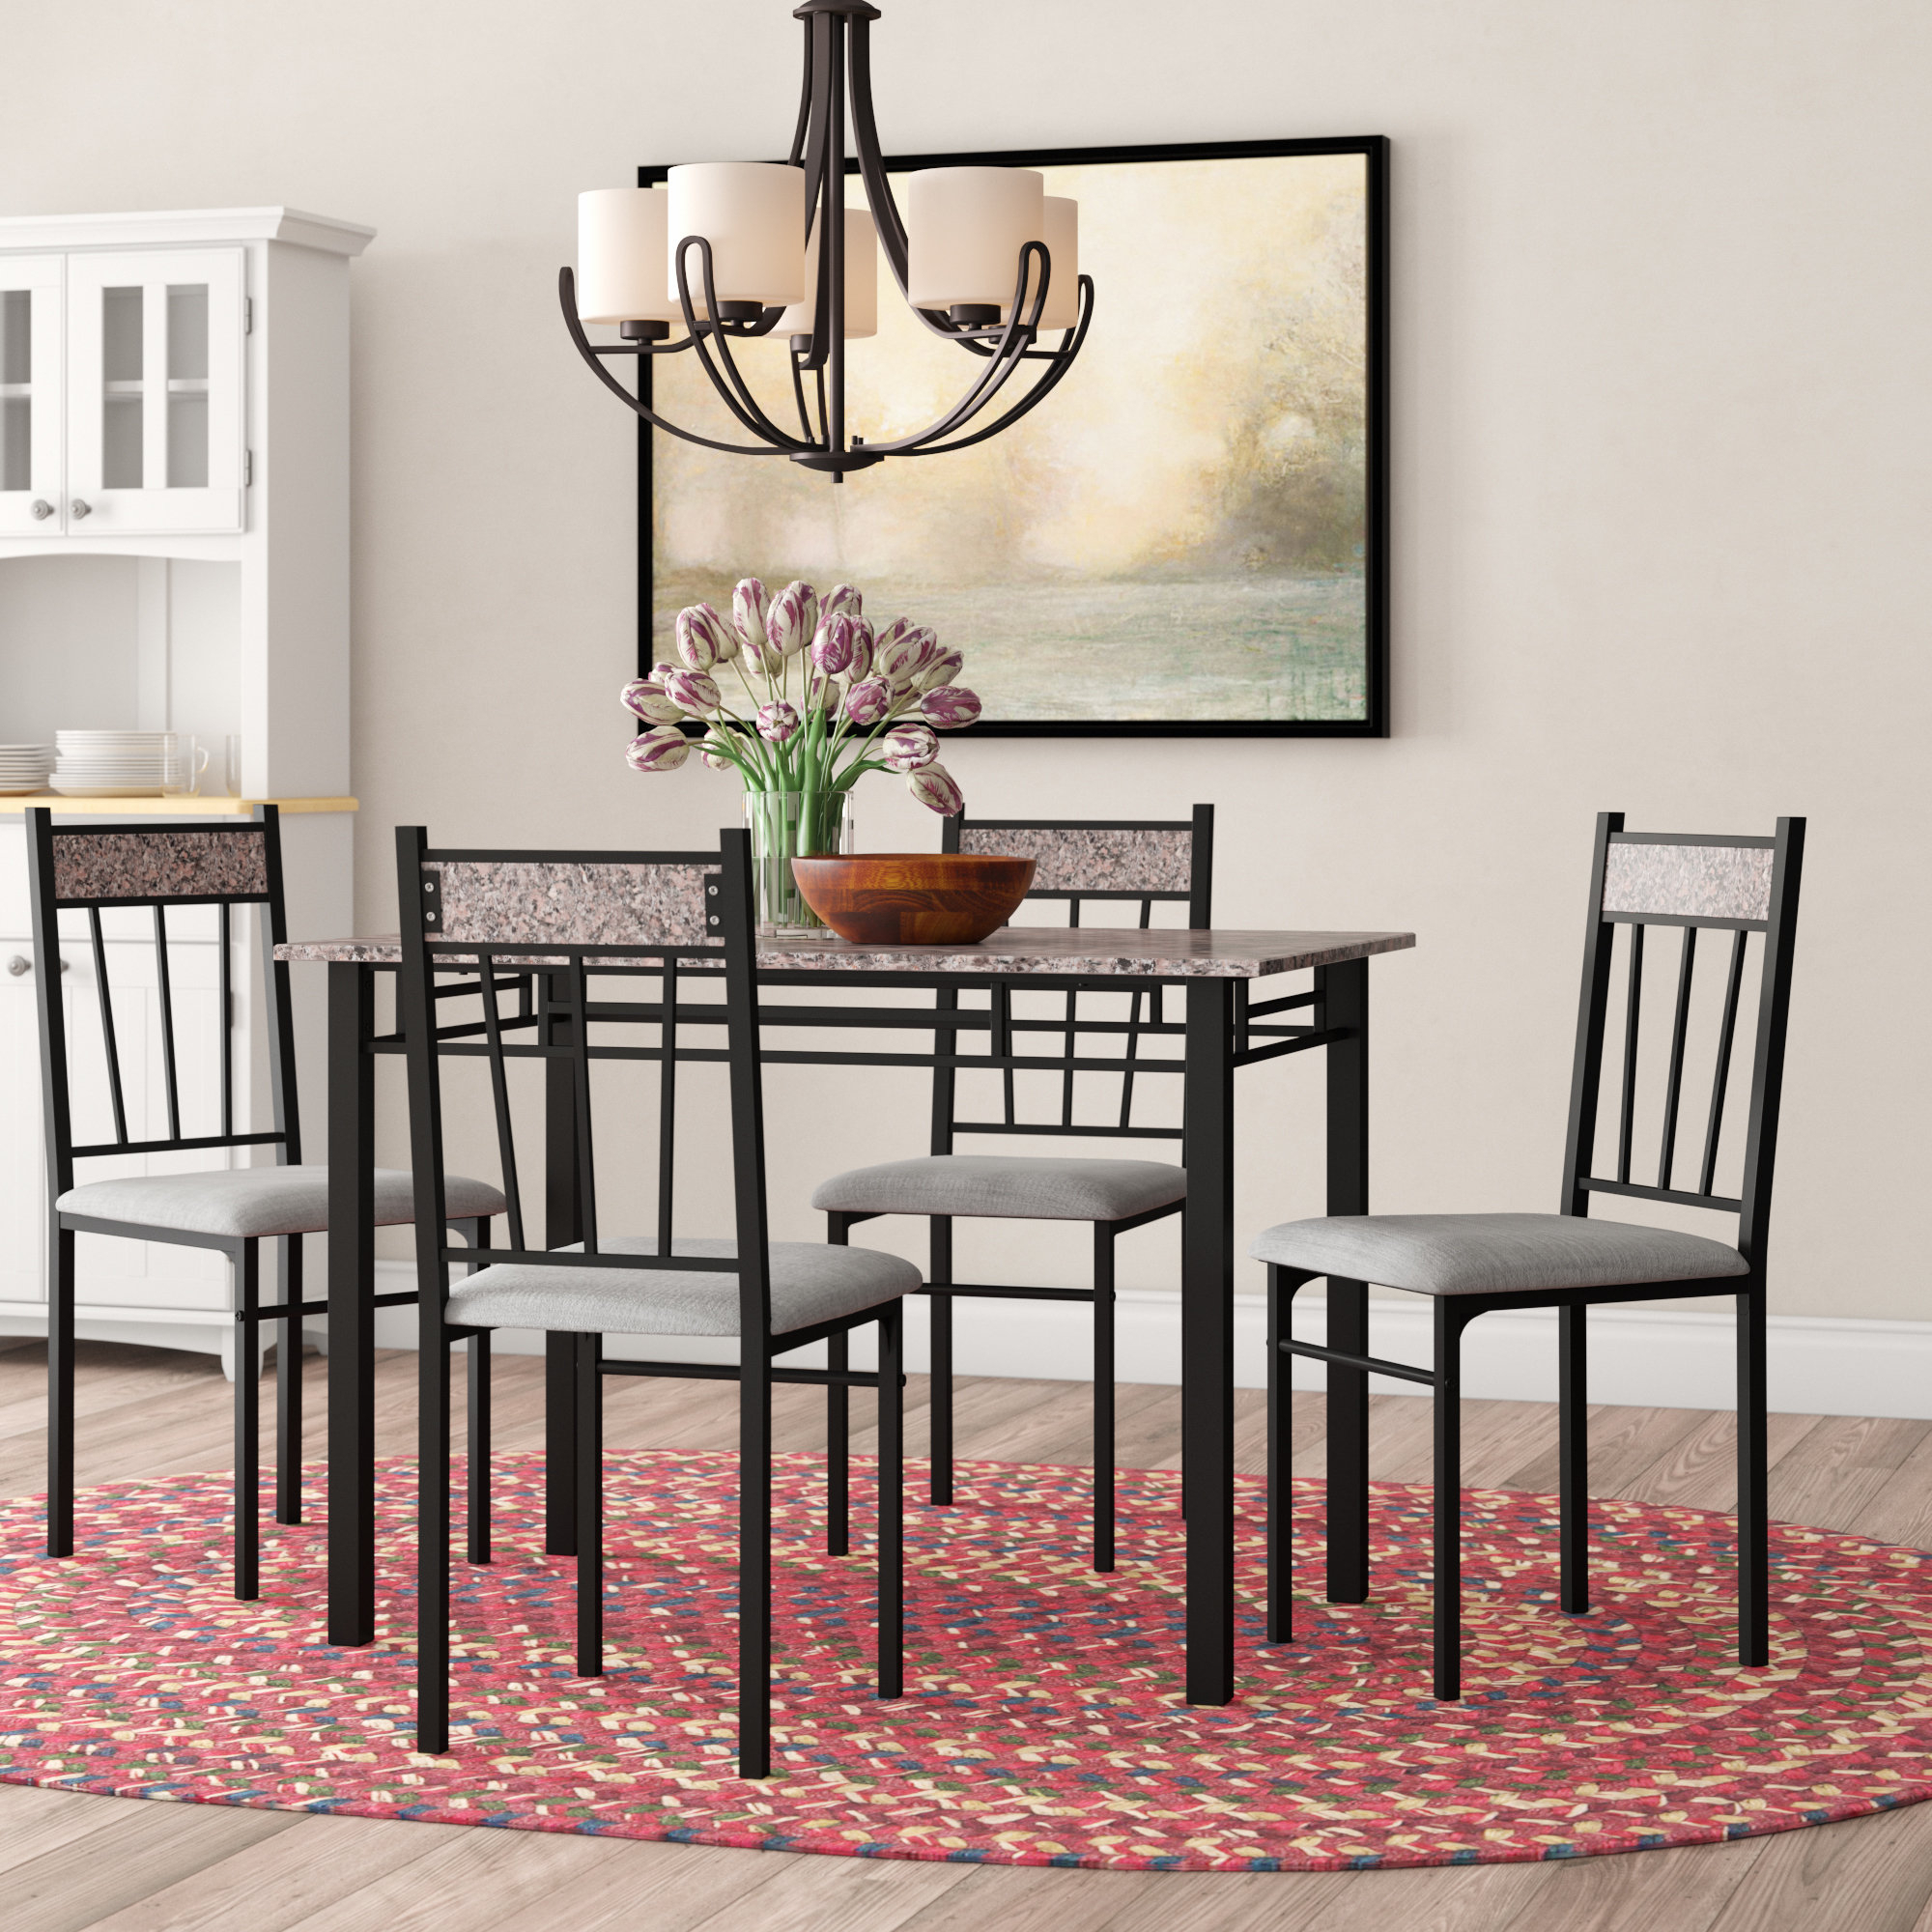 Wayfair With Liles 5 Piece Breakfast Nook Dining Sets (View 24 of 25)